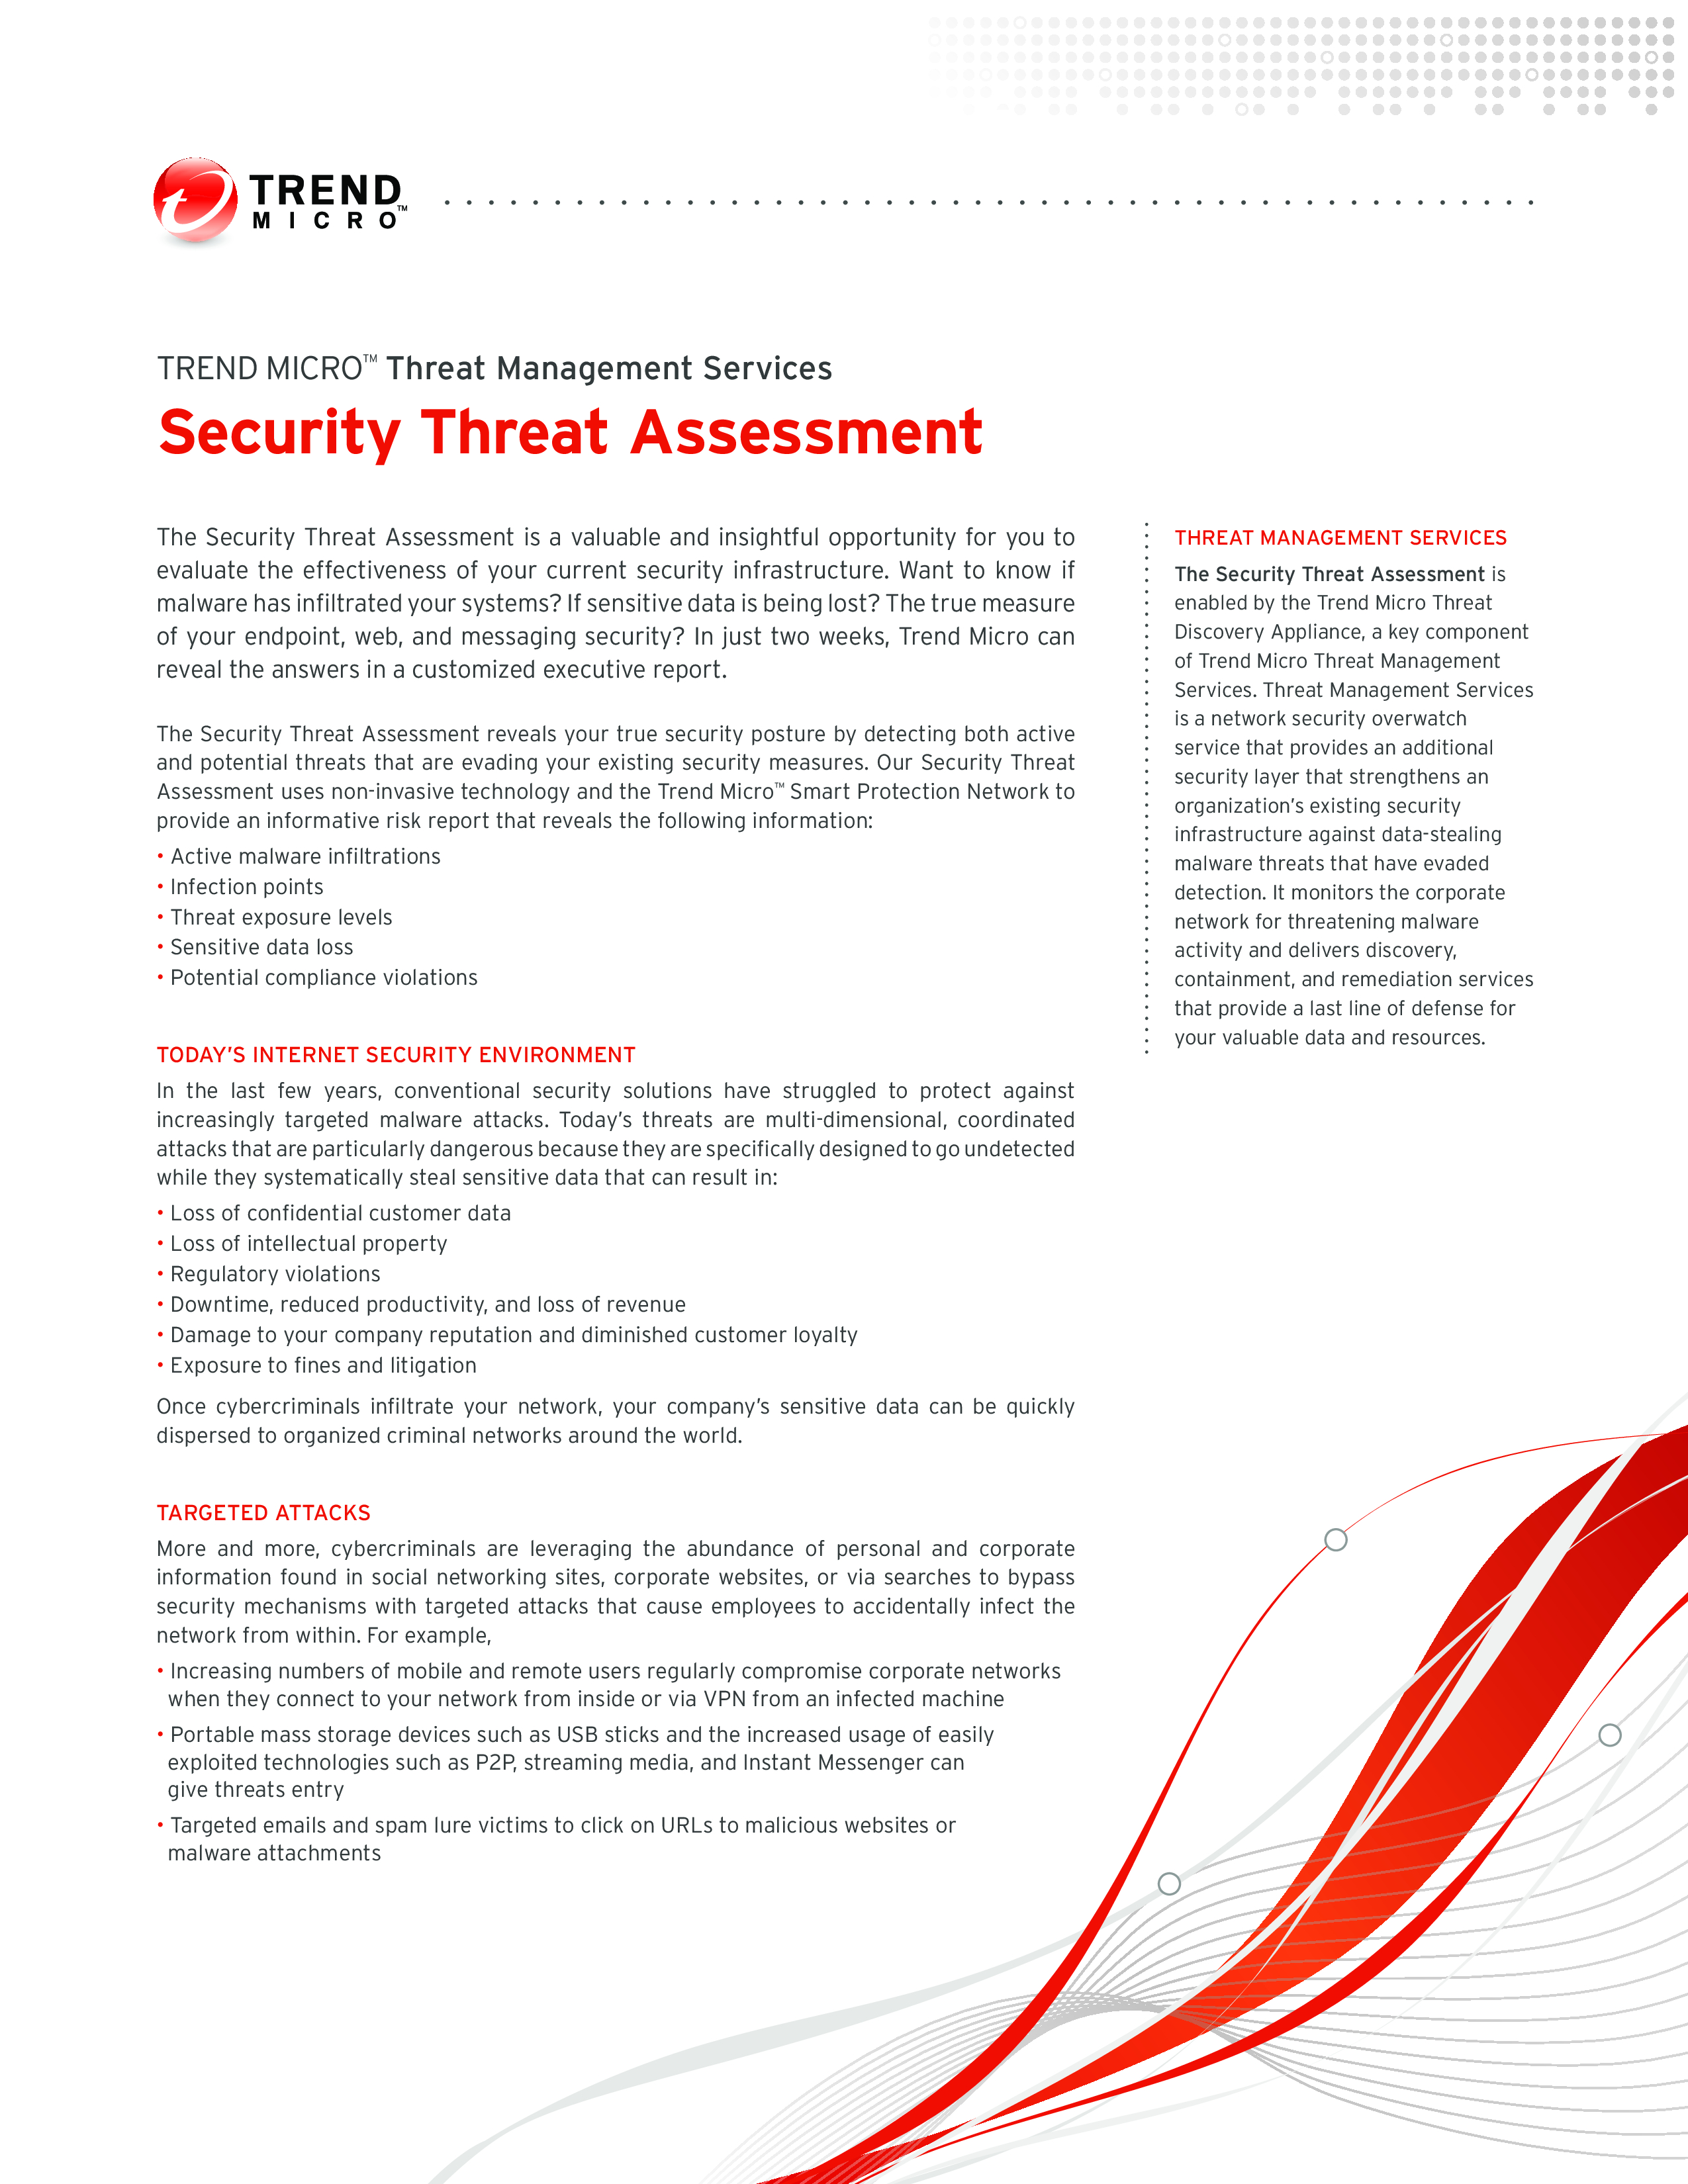 Security Threat Assessment  Templates At Allbusinesstemplates With Regard To Threat Assessment Report Template